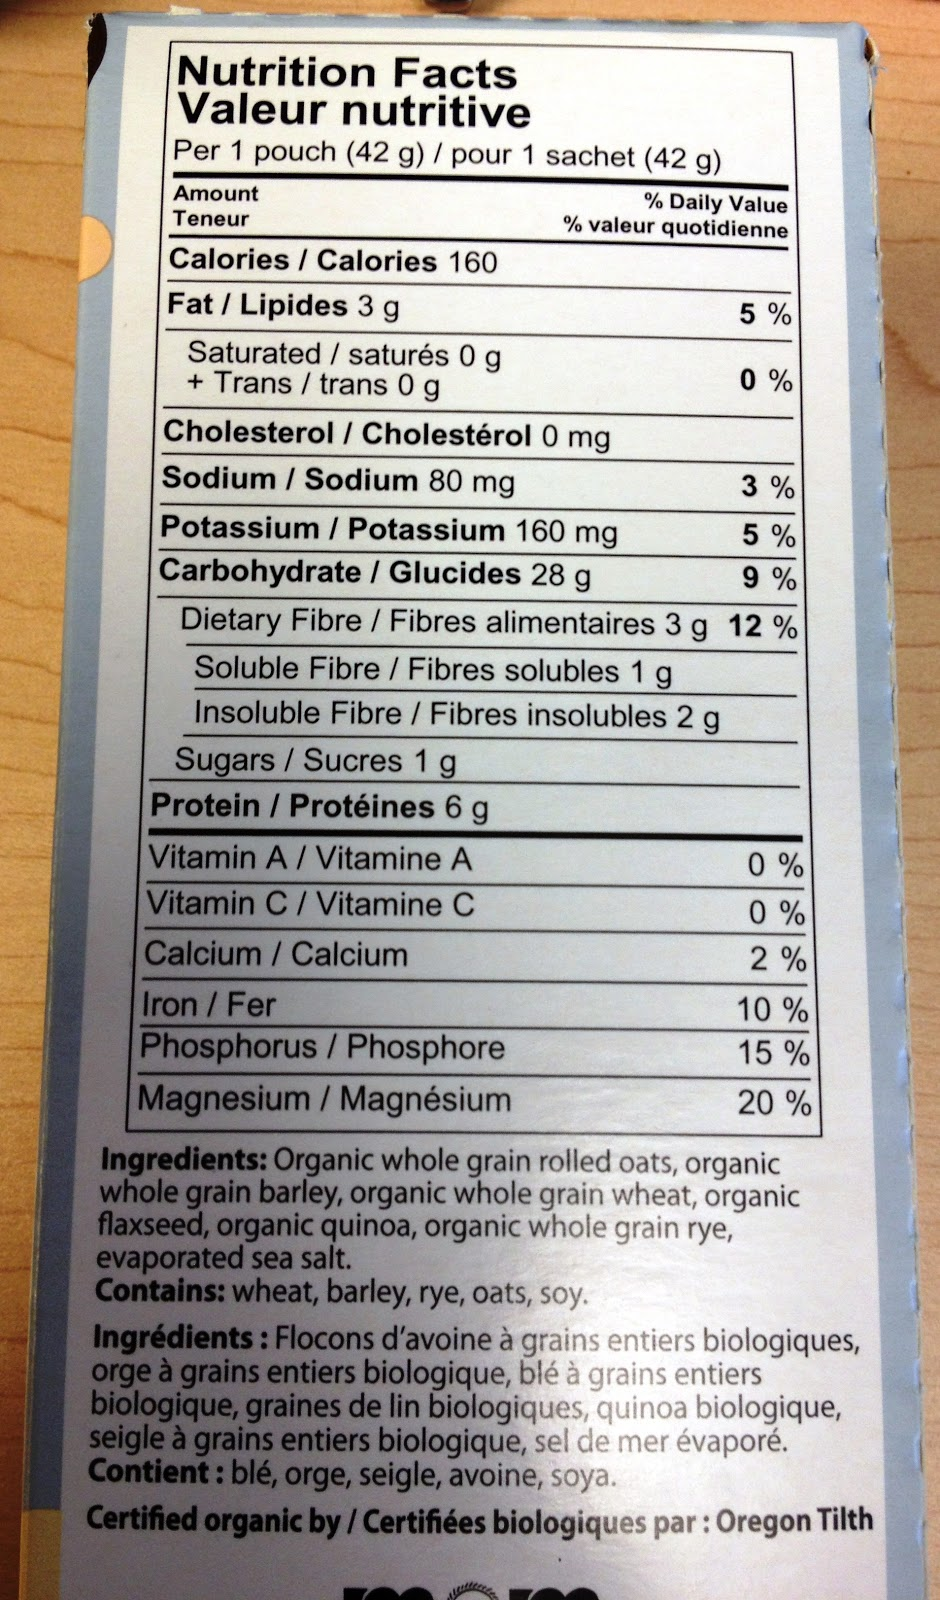 Cinnamon Toast Crunch Nutrition Facts s Gallery | ImagesJar